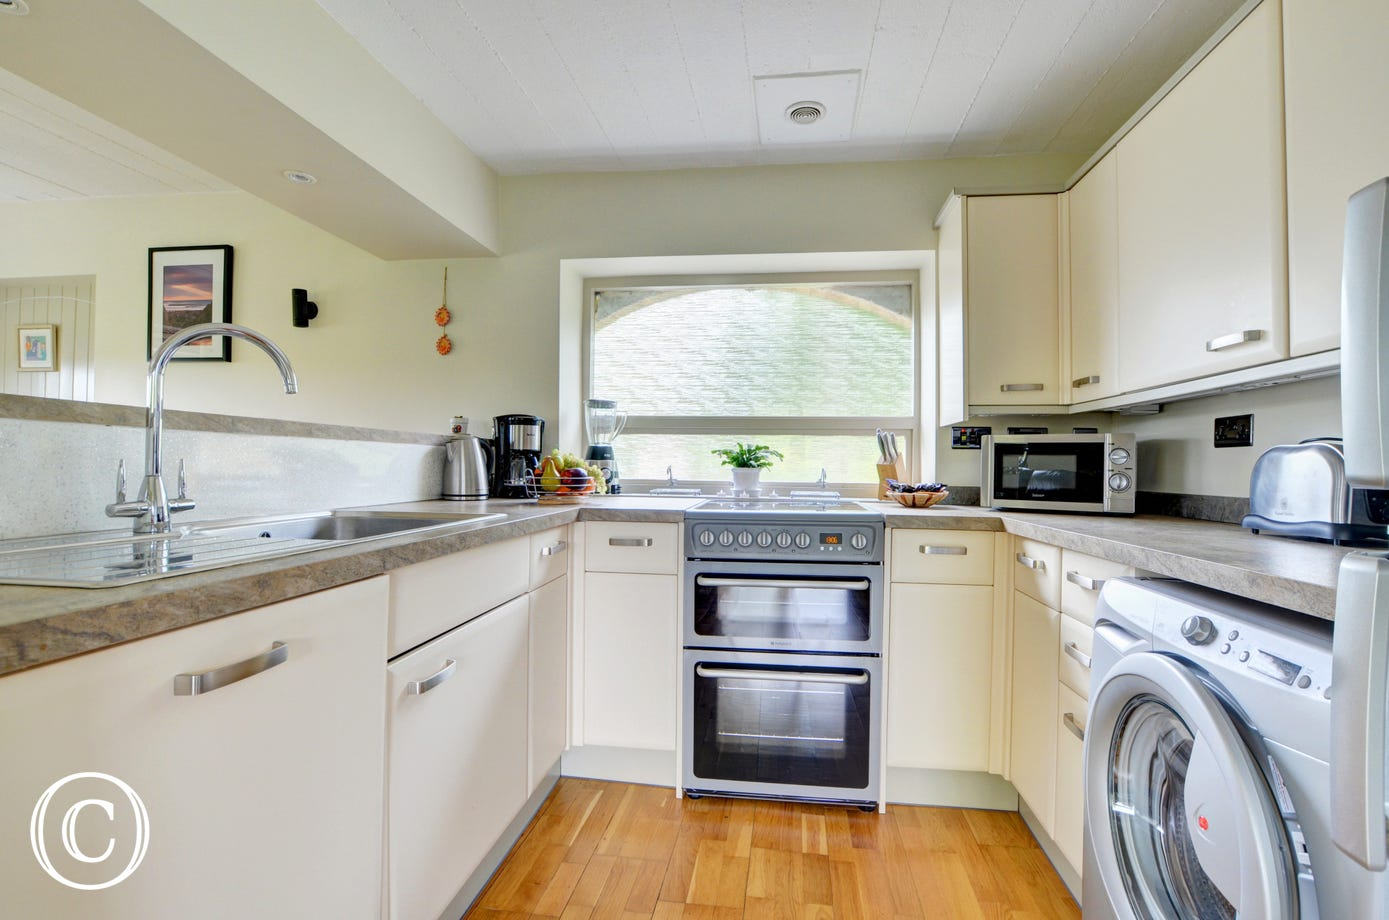 The kitchen is well equipped if you are planning to stay in and cook supper or preparing a breakfast to eat al fresco, enjoying the fabulous views